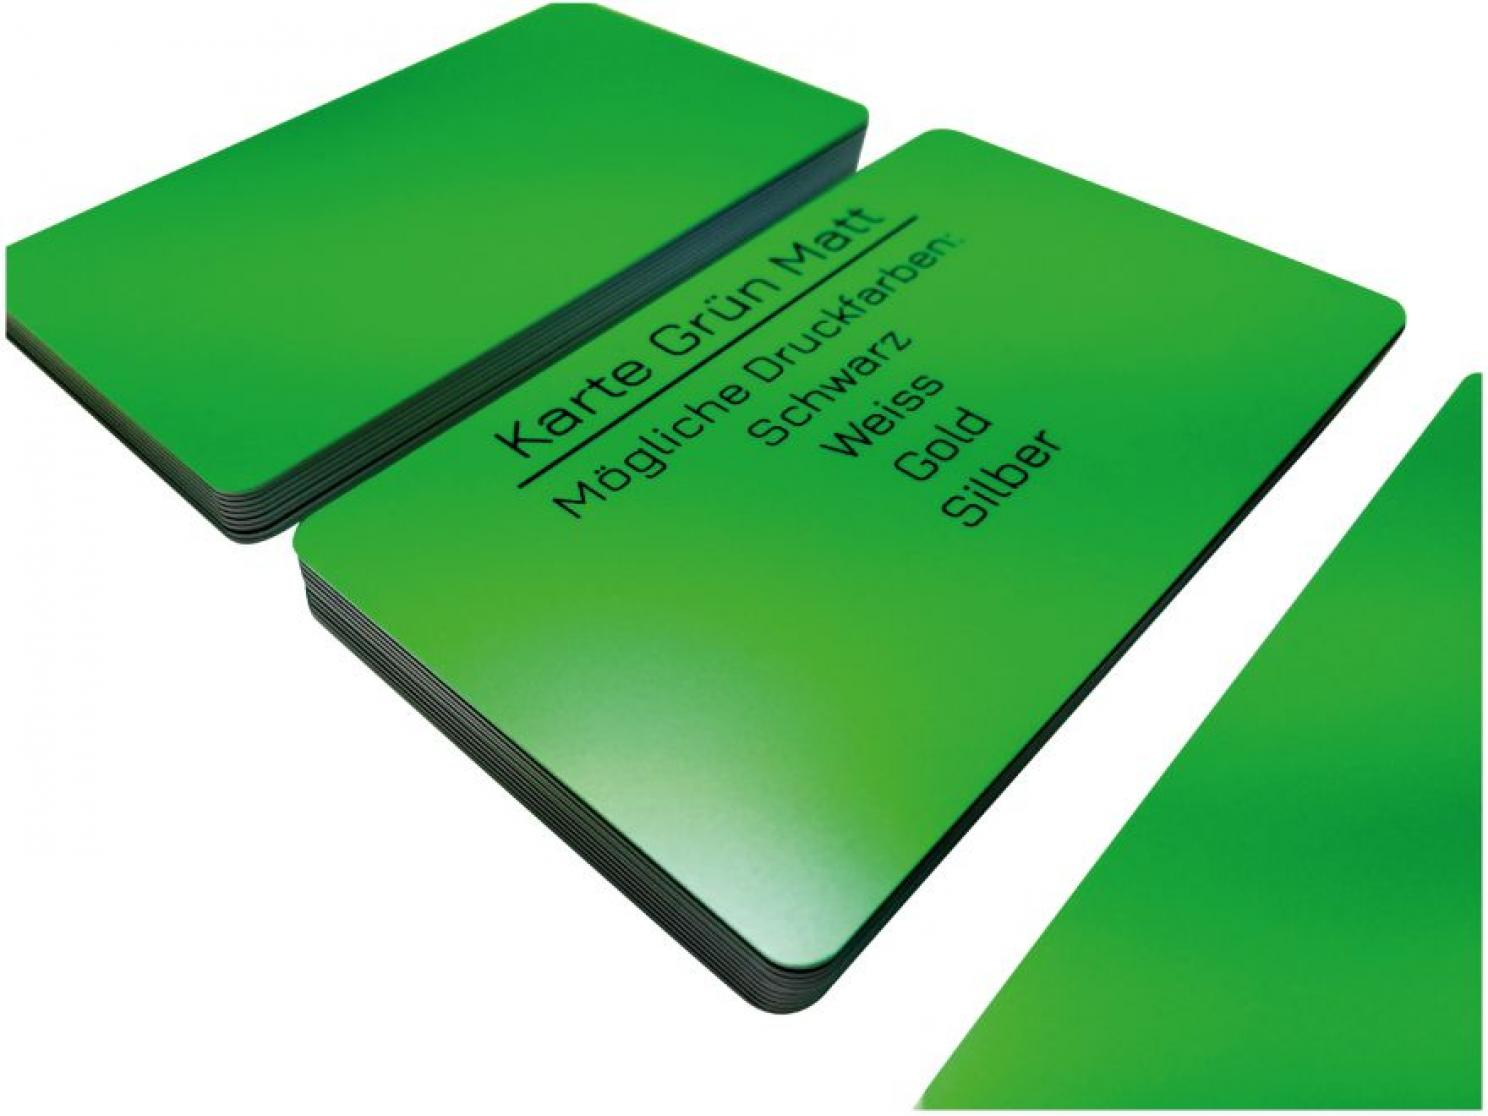 plastic card green matt finish